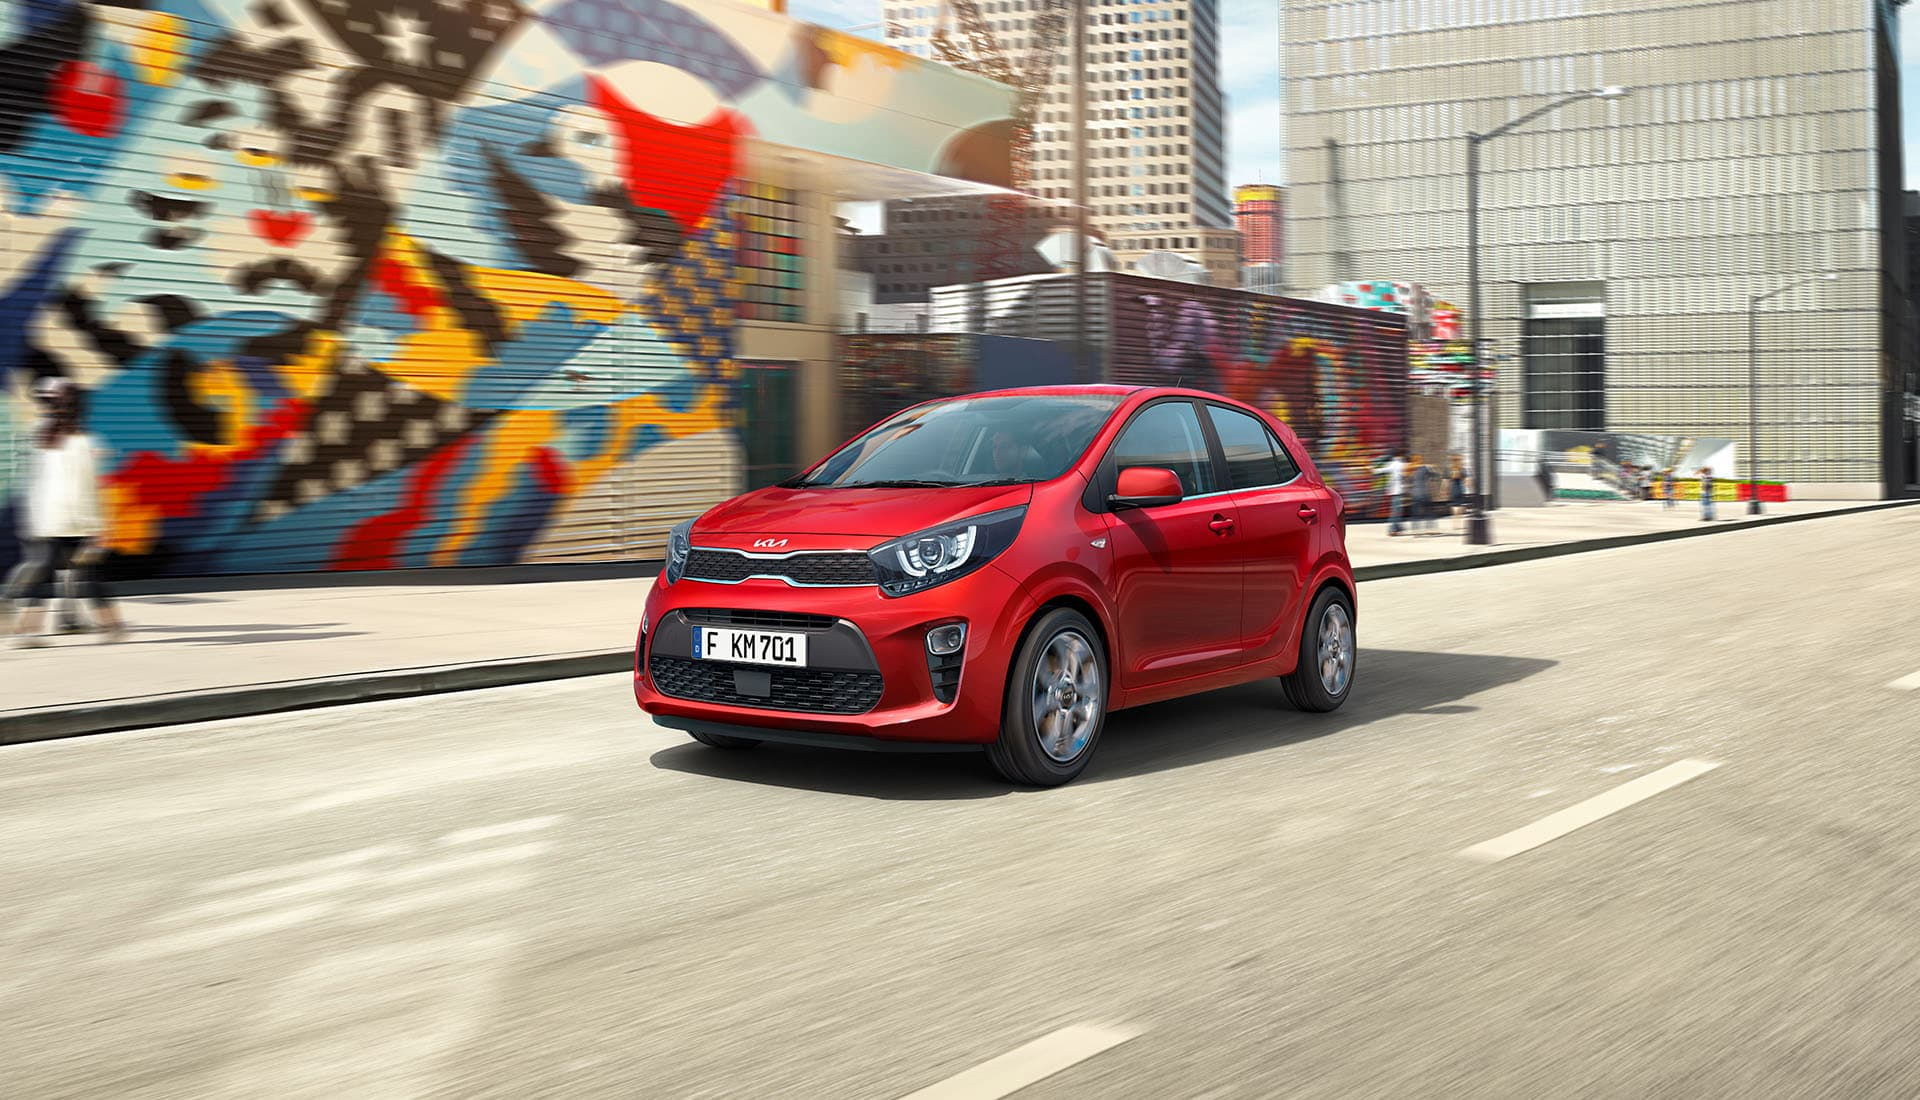 The new Kia Picanto city driving